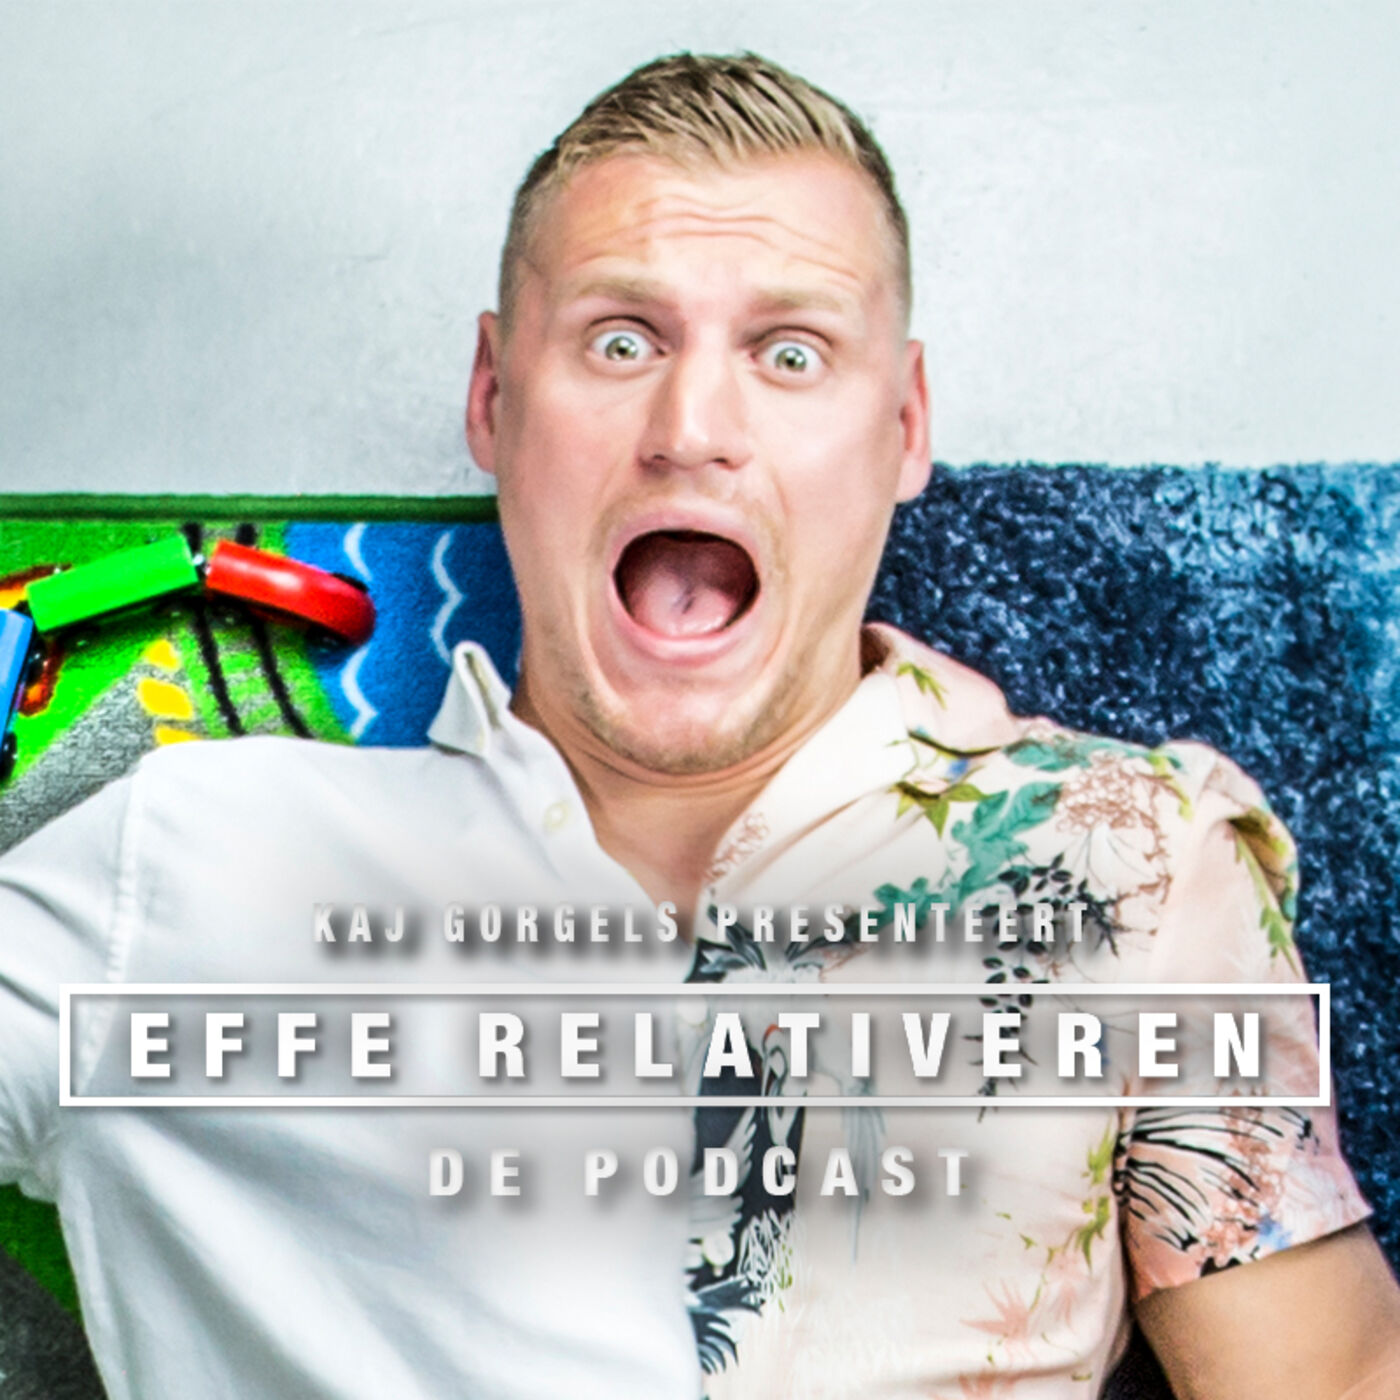 EFFE RELATIVEREN de podcast logo